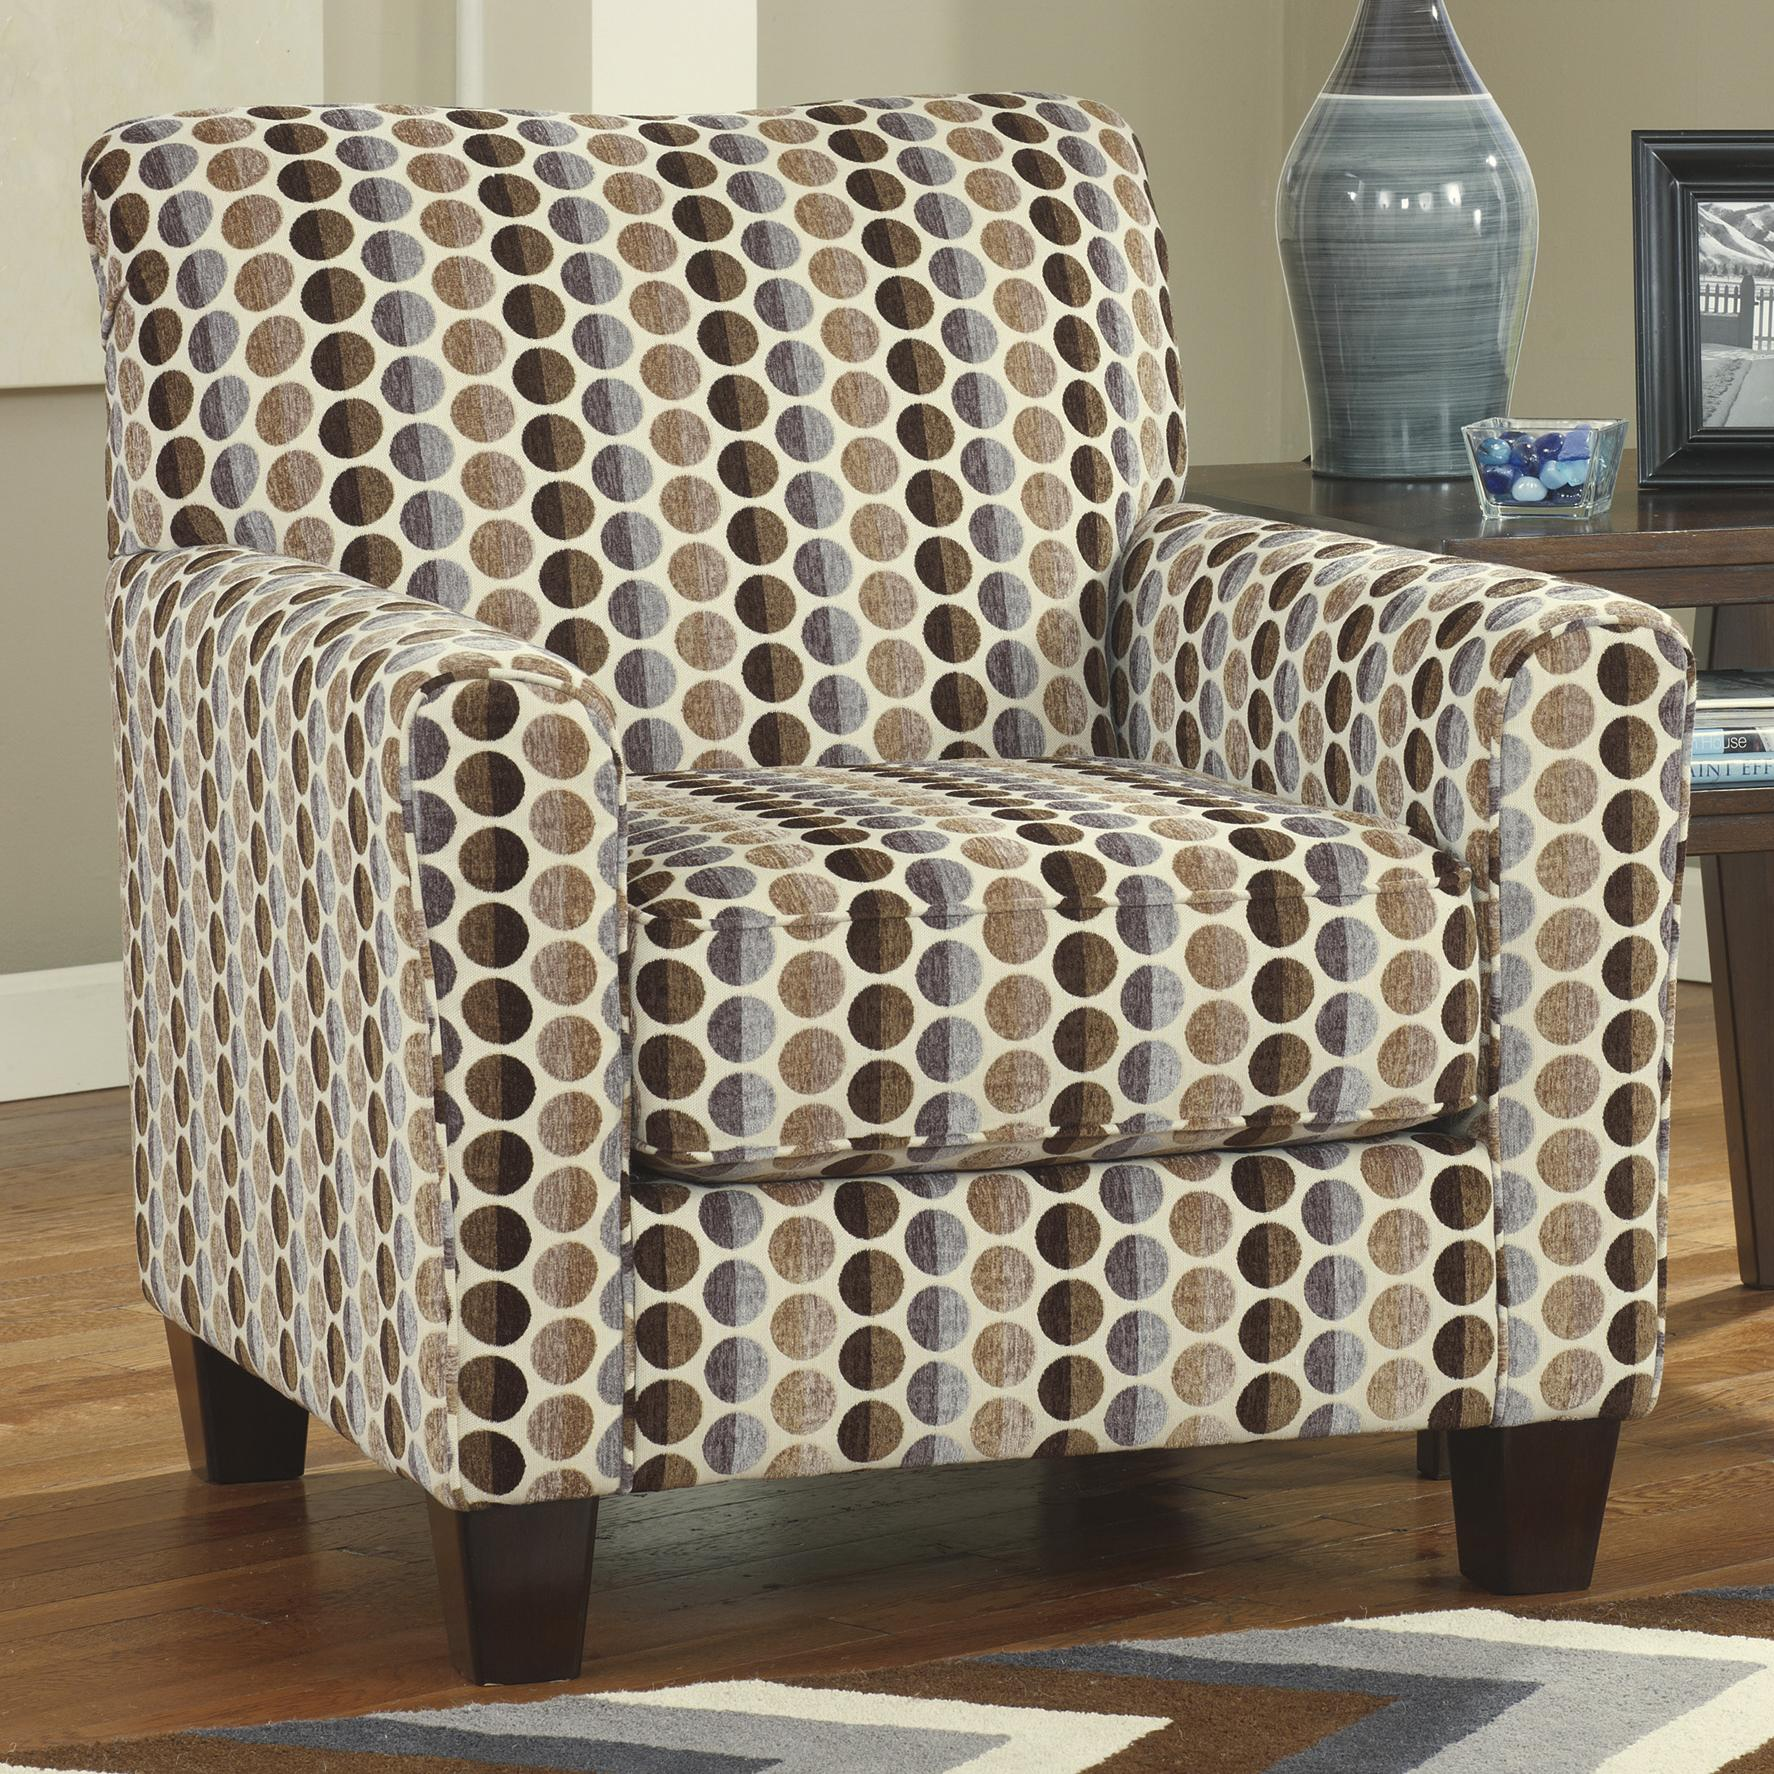 Accent Chairs Ashley Furniture Ashley Furniture Geordie Contemporary Accent Chair With Circle